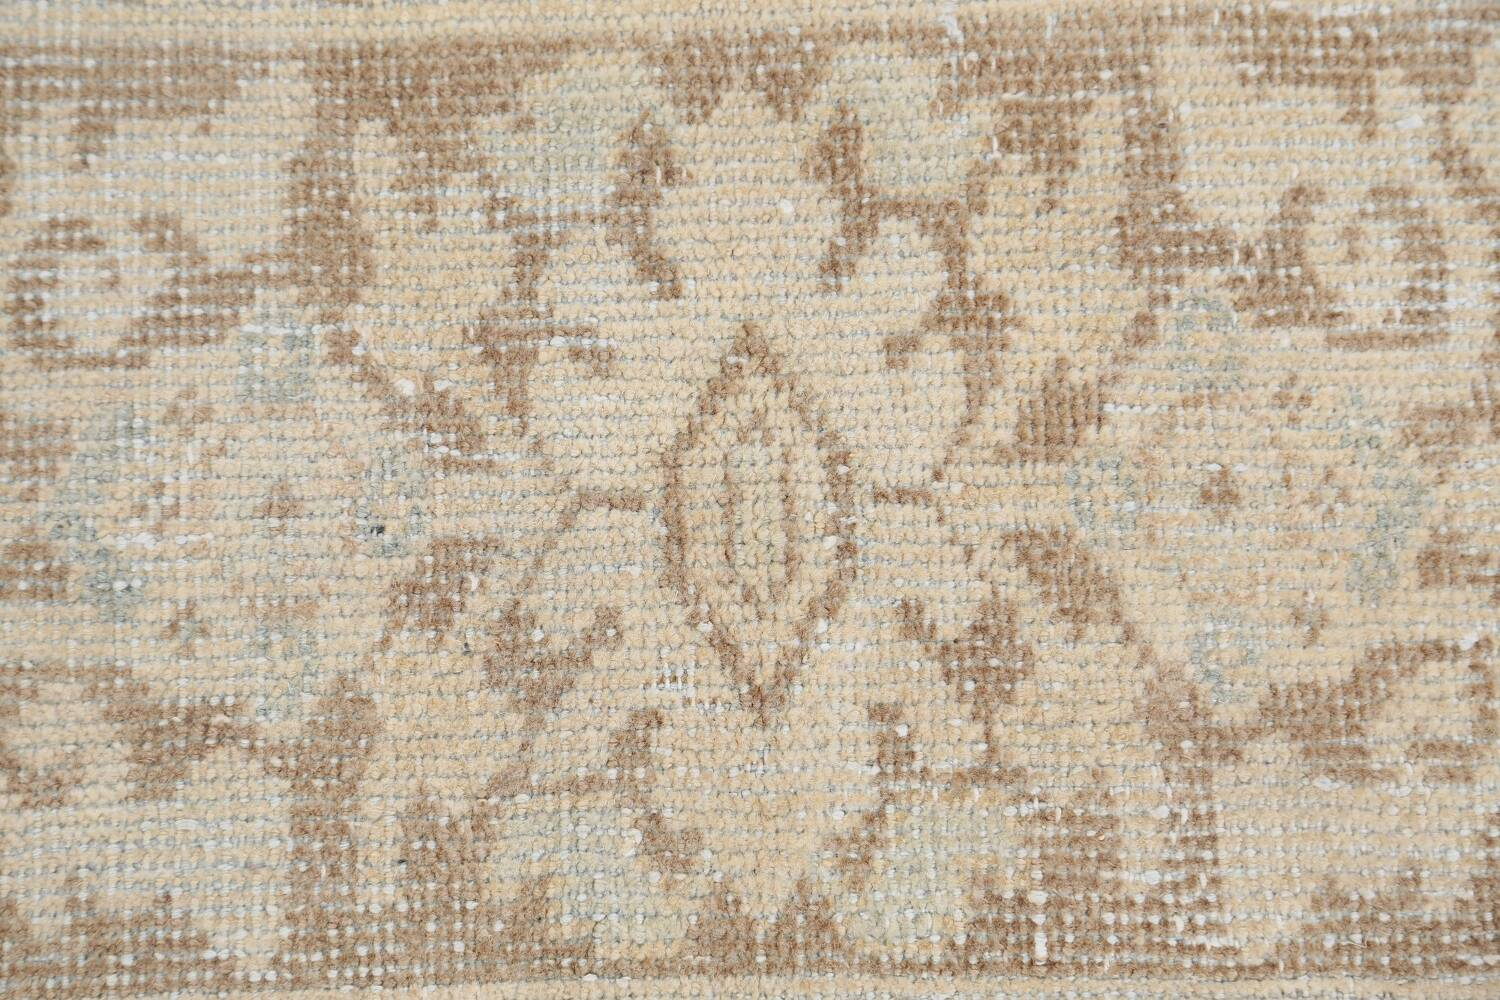 Antique Floral Mahal Persian Area Rug 9x12 image 9